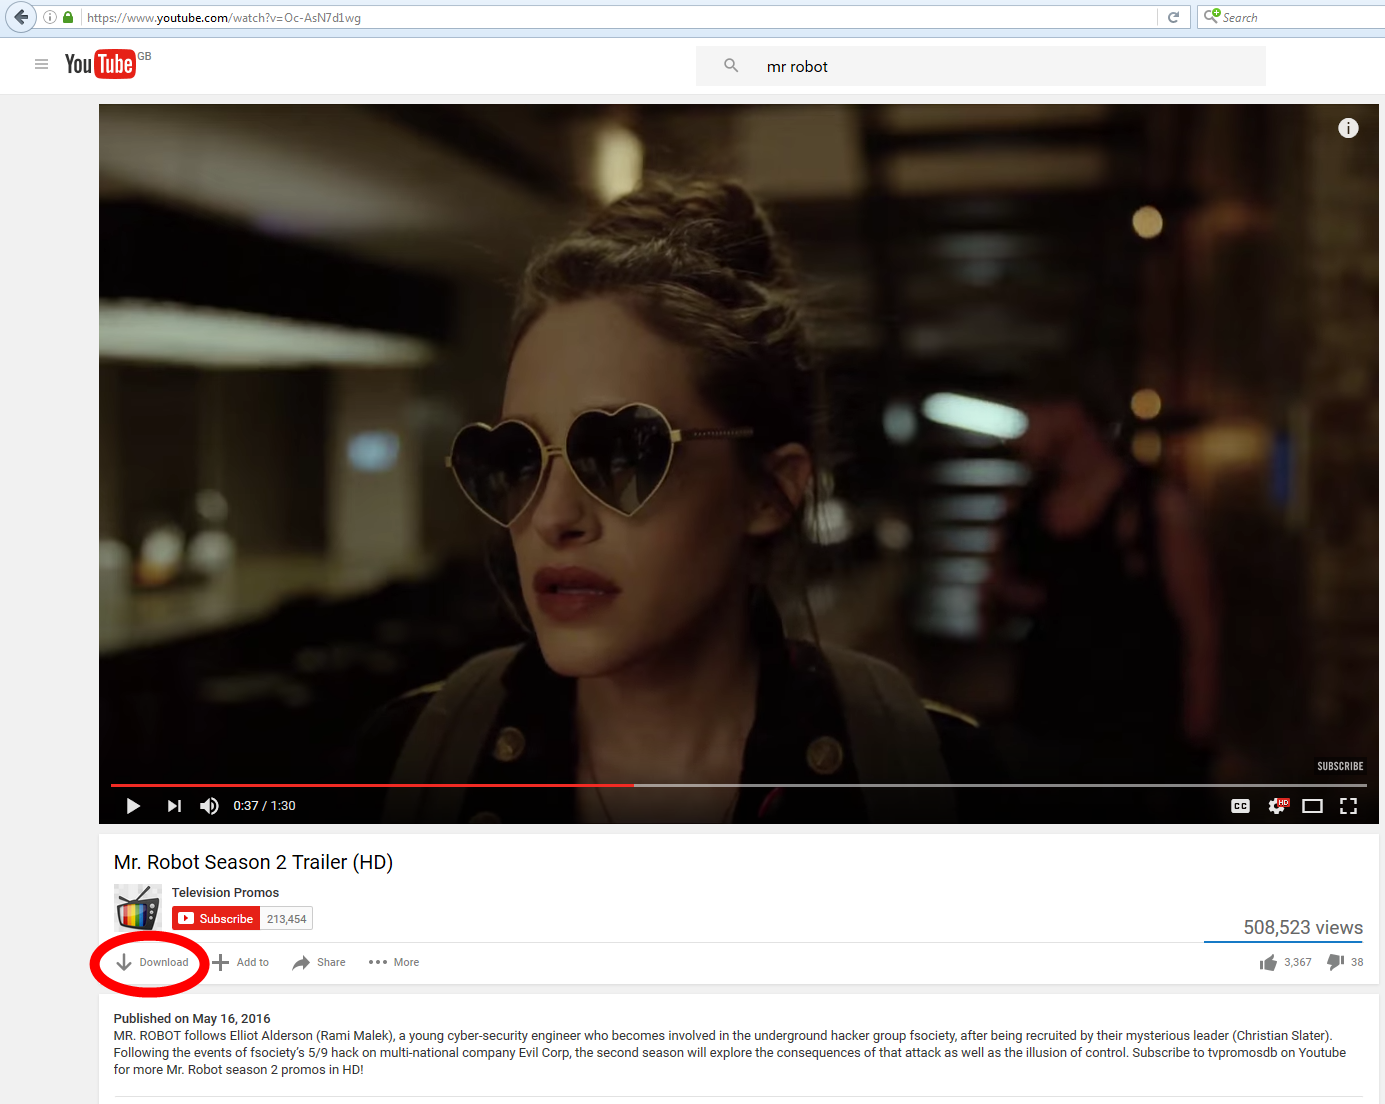 youtube_download.png